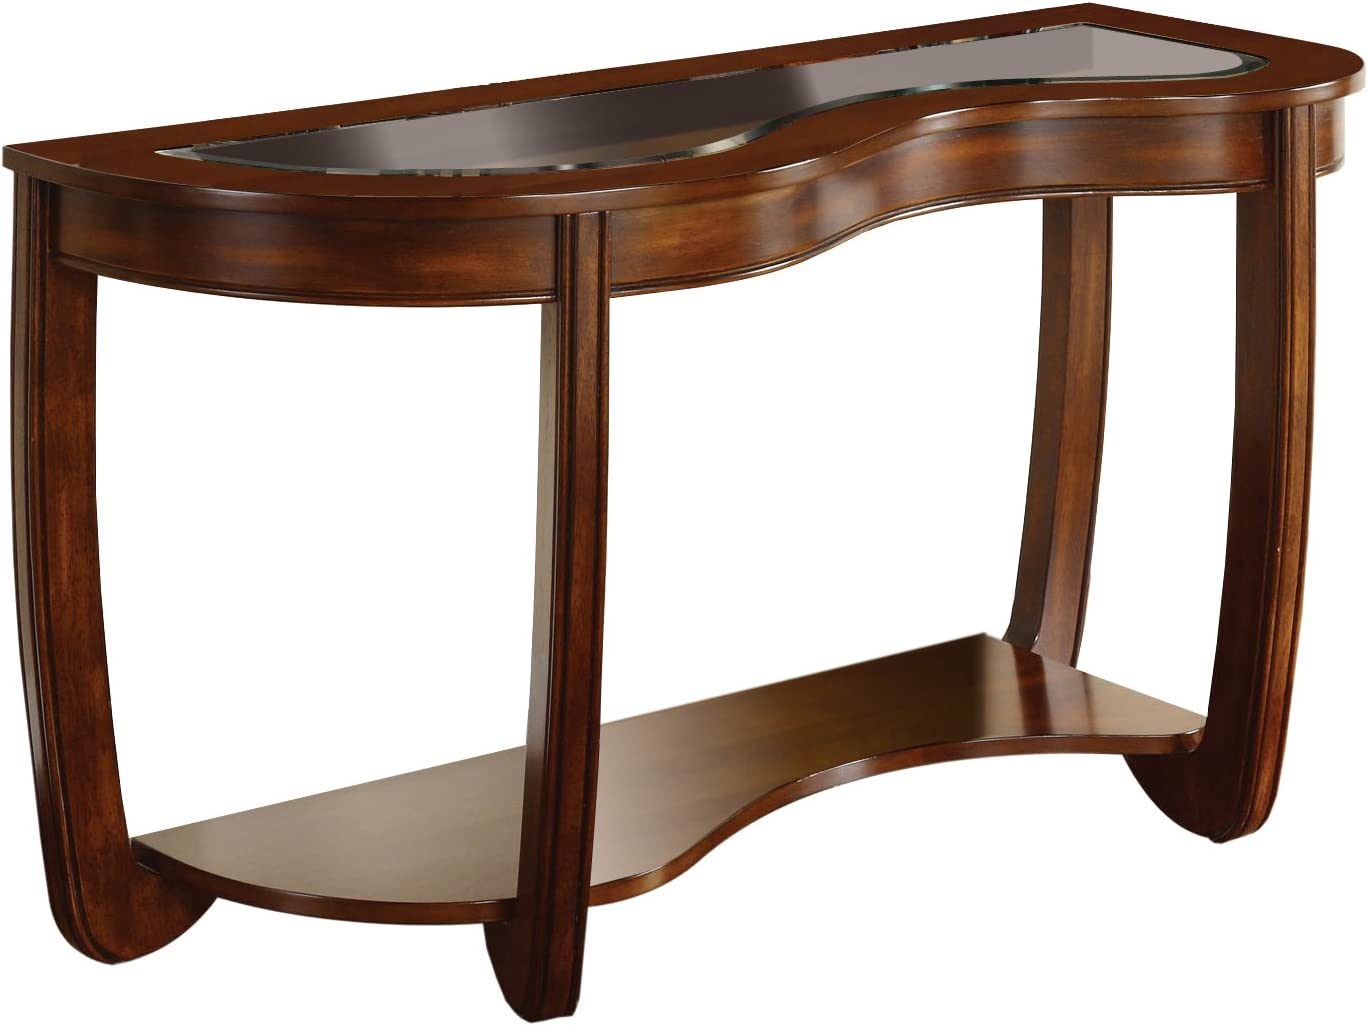 Furniture of America Byrnee Sofa Table with 5mm Beveled Glass Top, Dark Cherry Finish